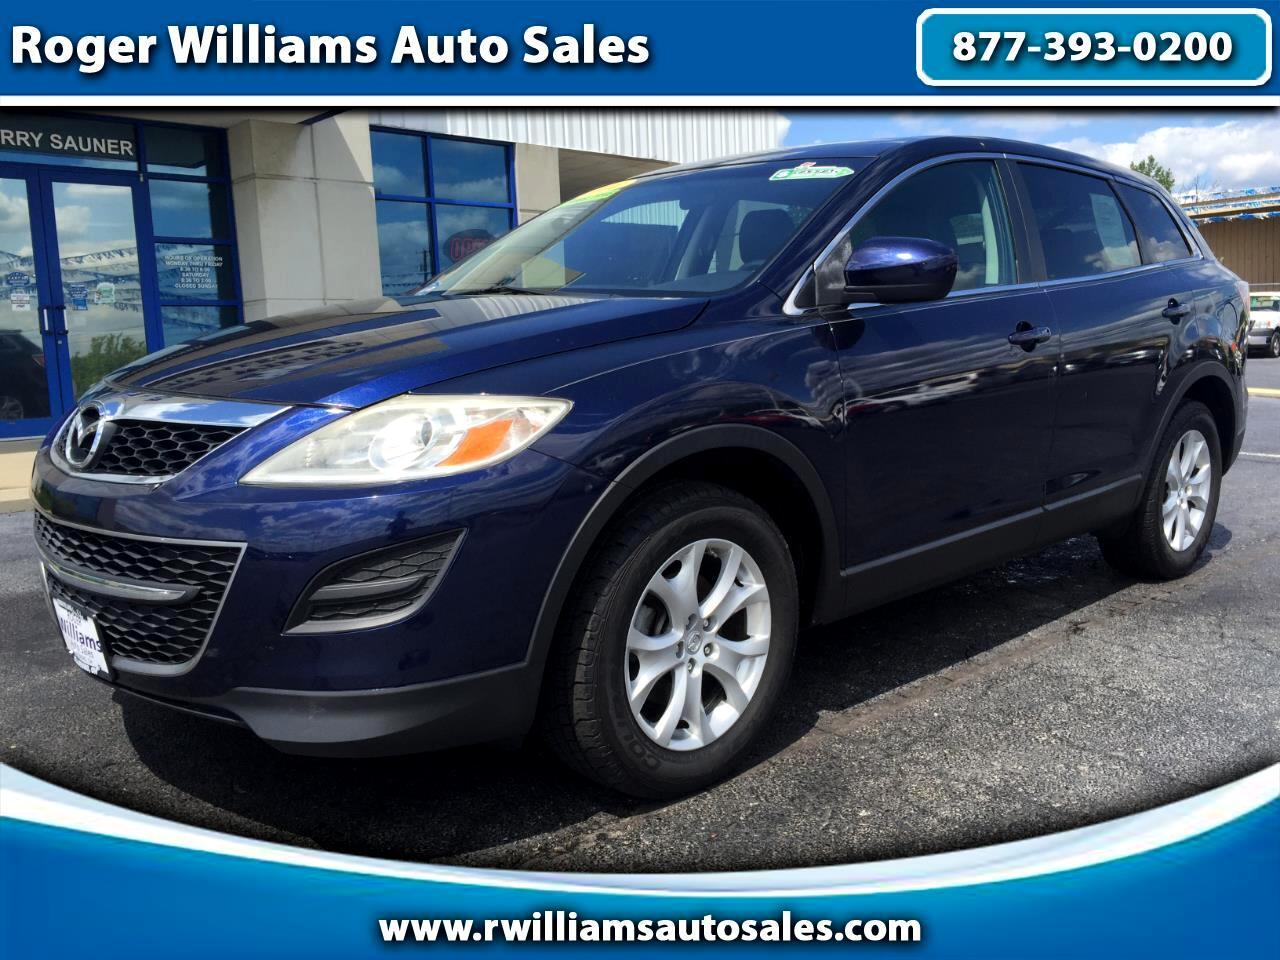 2011 Mazda CX-9 AWD 4dr Touring